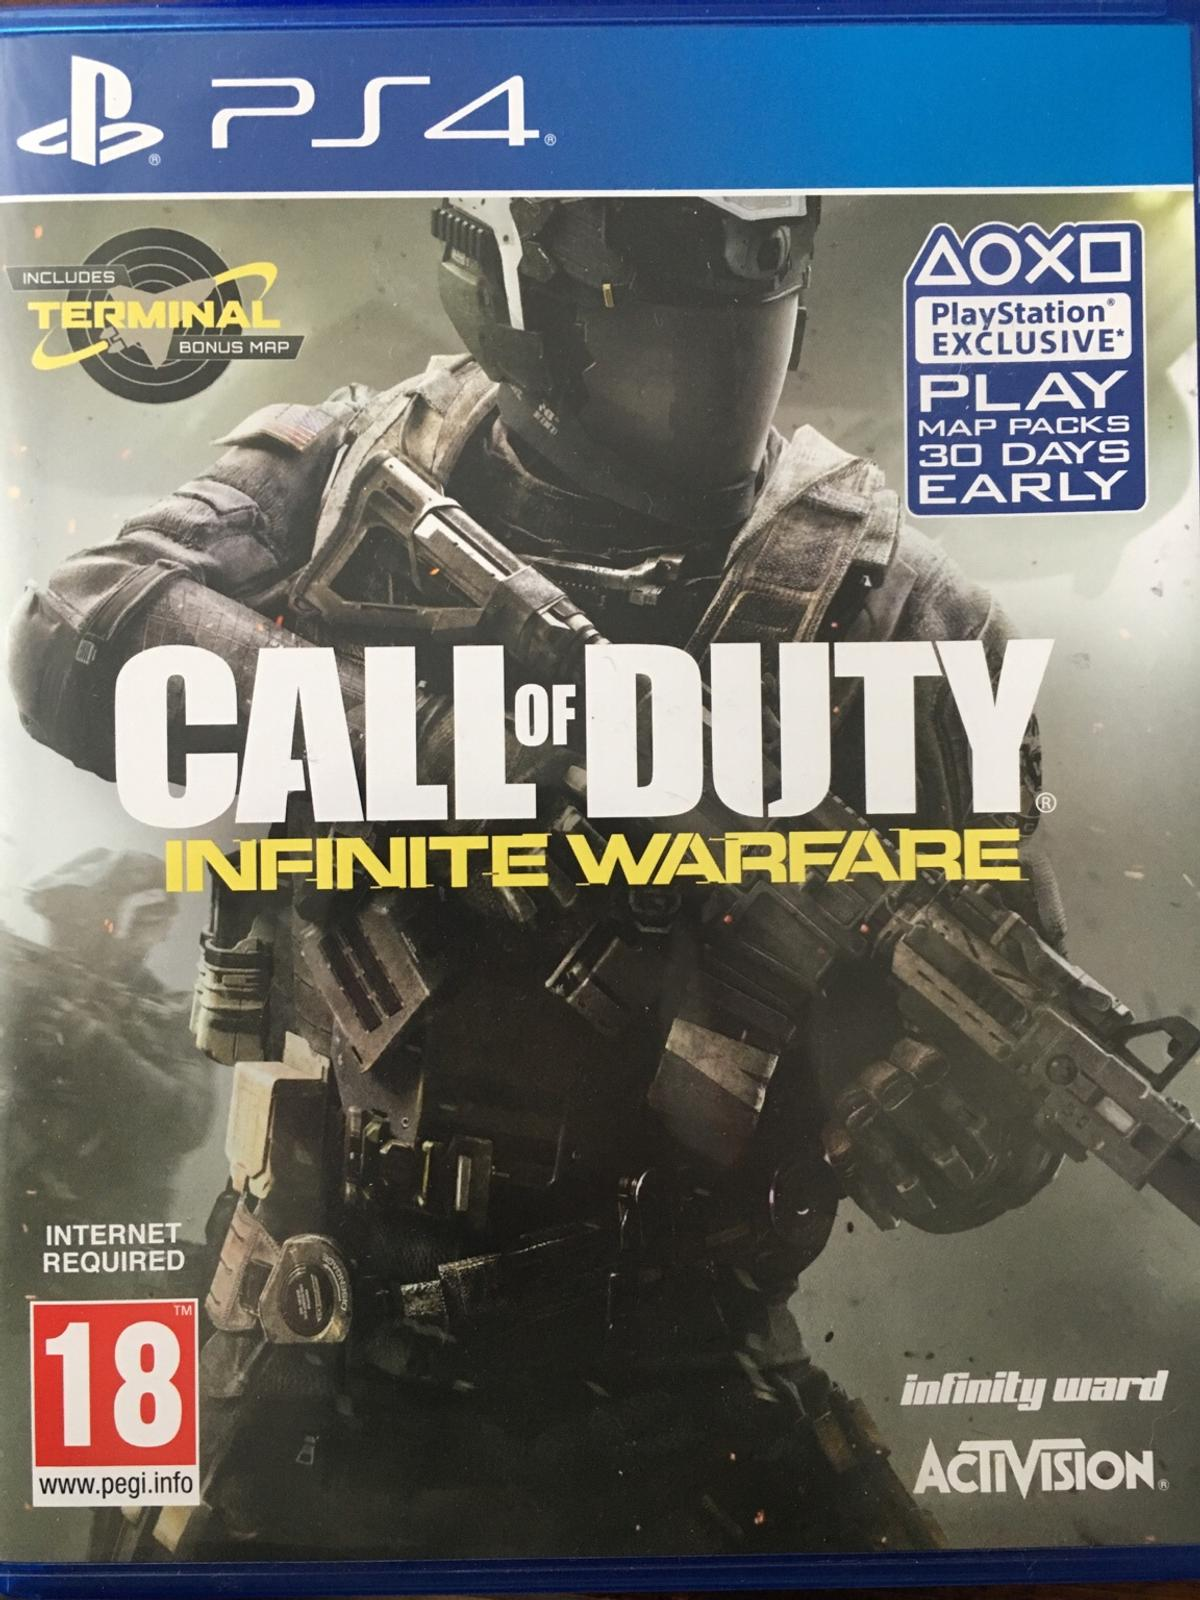 Ps4 Game Call Of Duty Infinite Warfare In L11 Liverpool For 5 00 For Sale Shpock